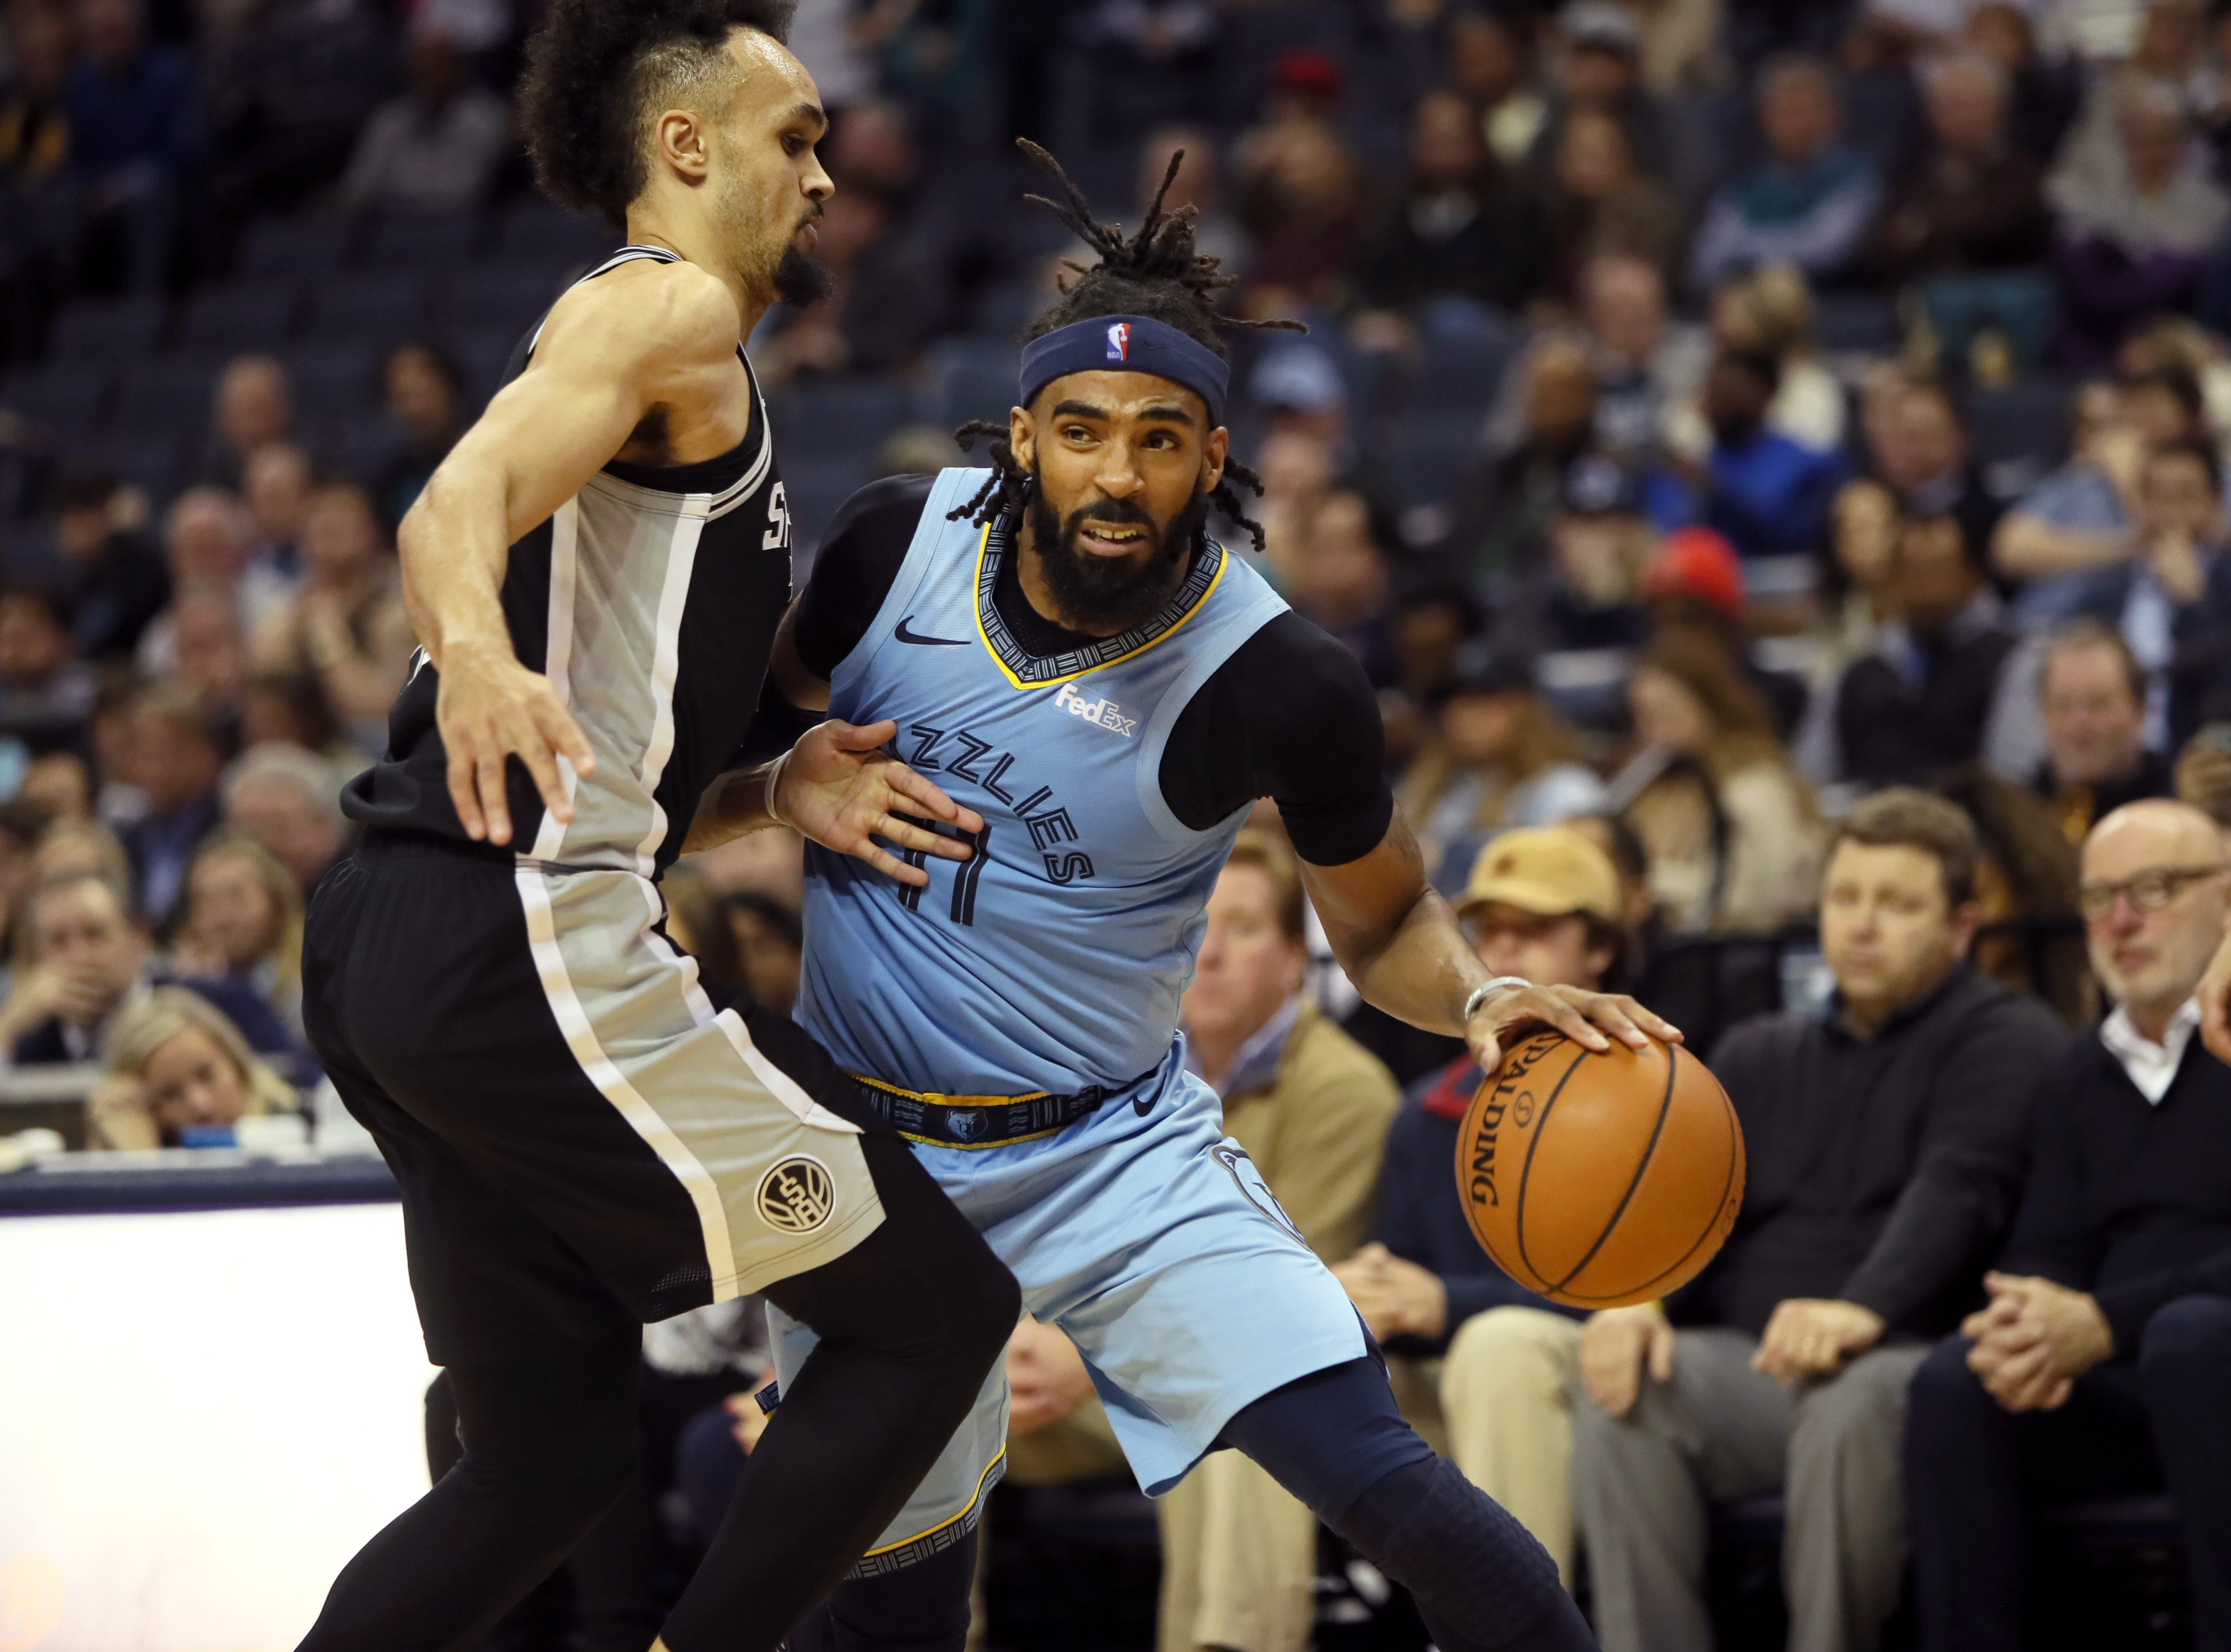 Memphis Grizzlies guard Mike Conley drives the basline past San Antonio Spurs defender Derrick White during their game at the FedExForum on Wednesday, Jan. 9, 2019.